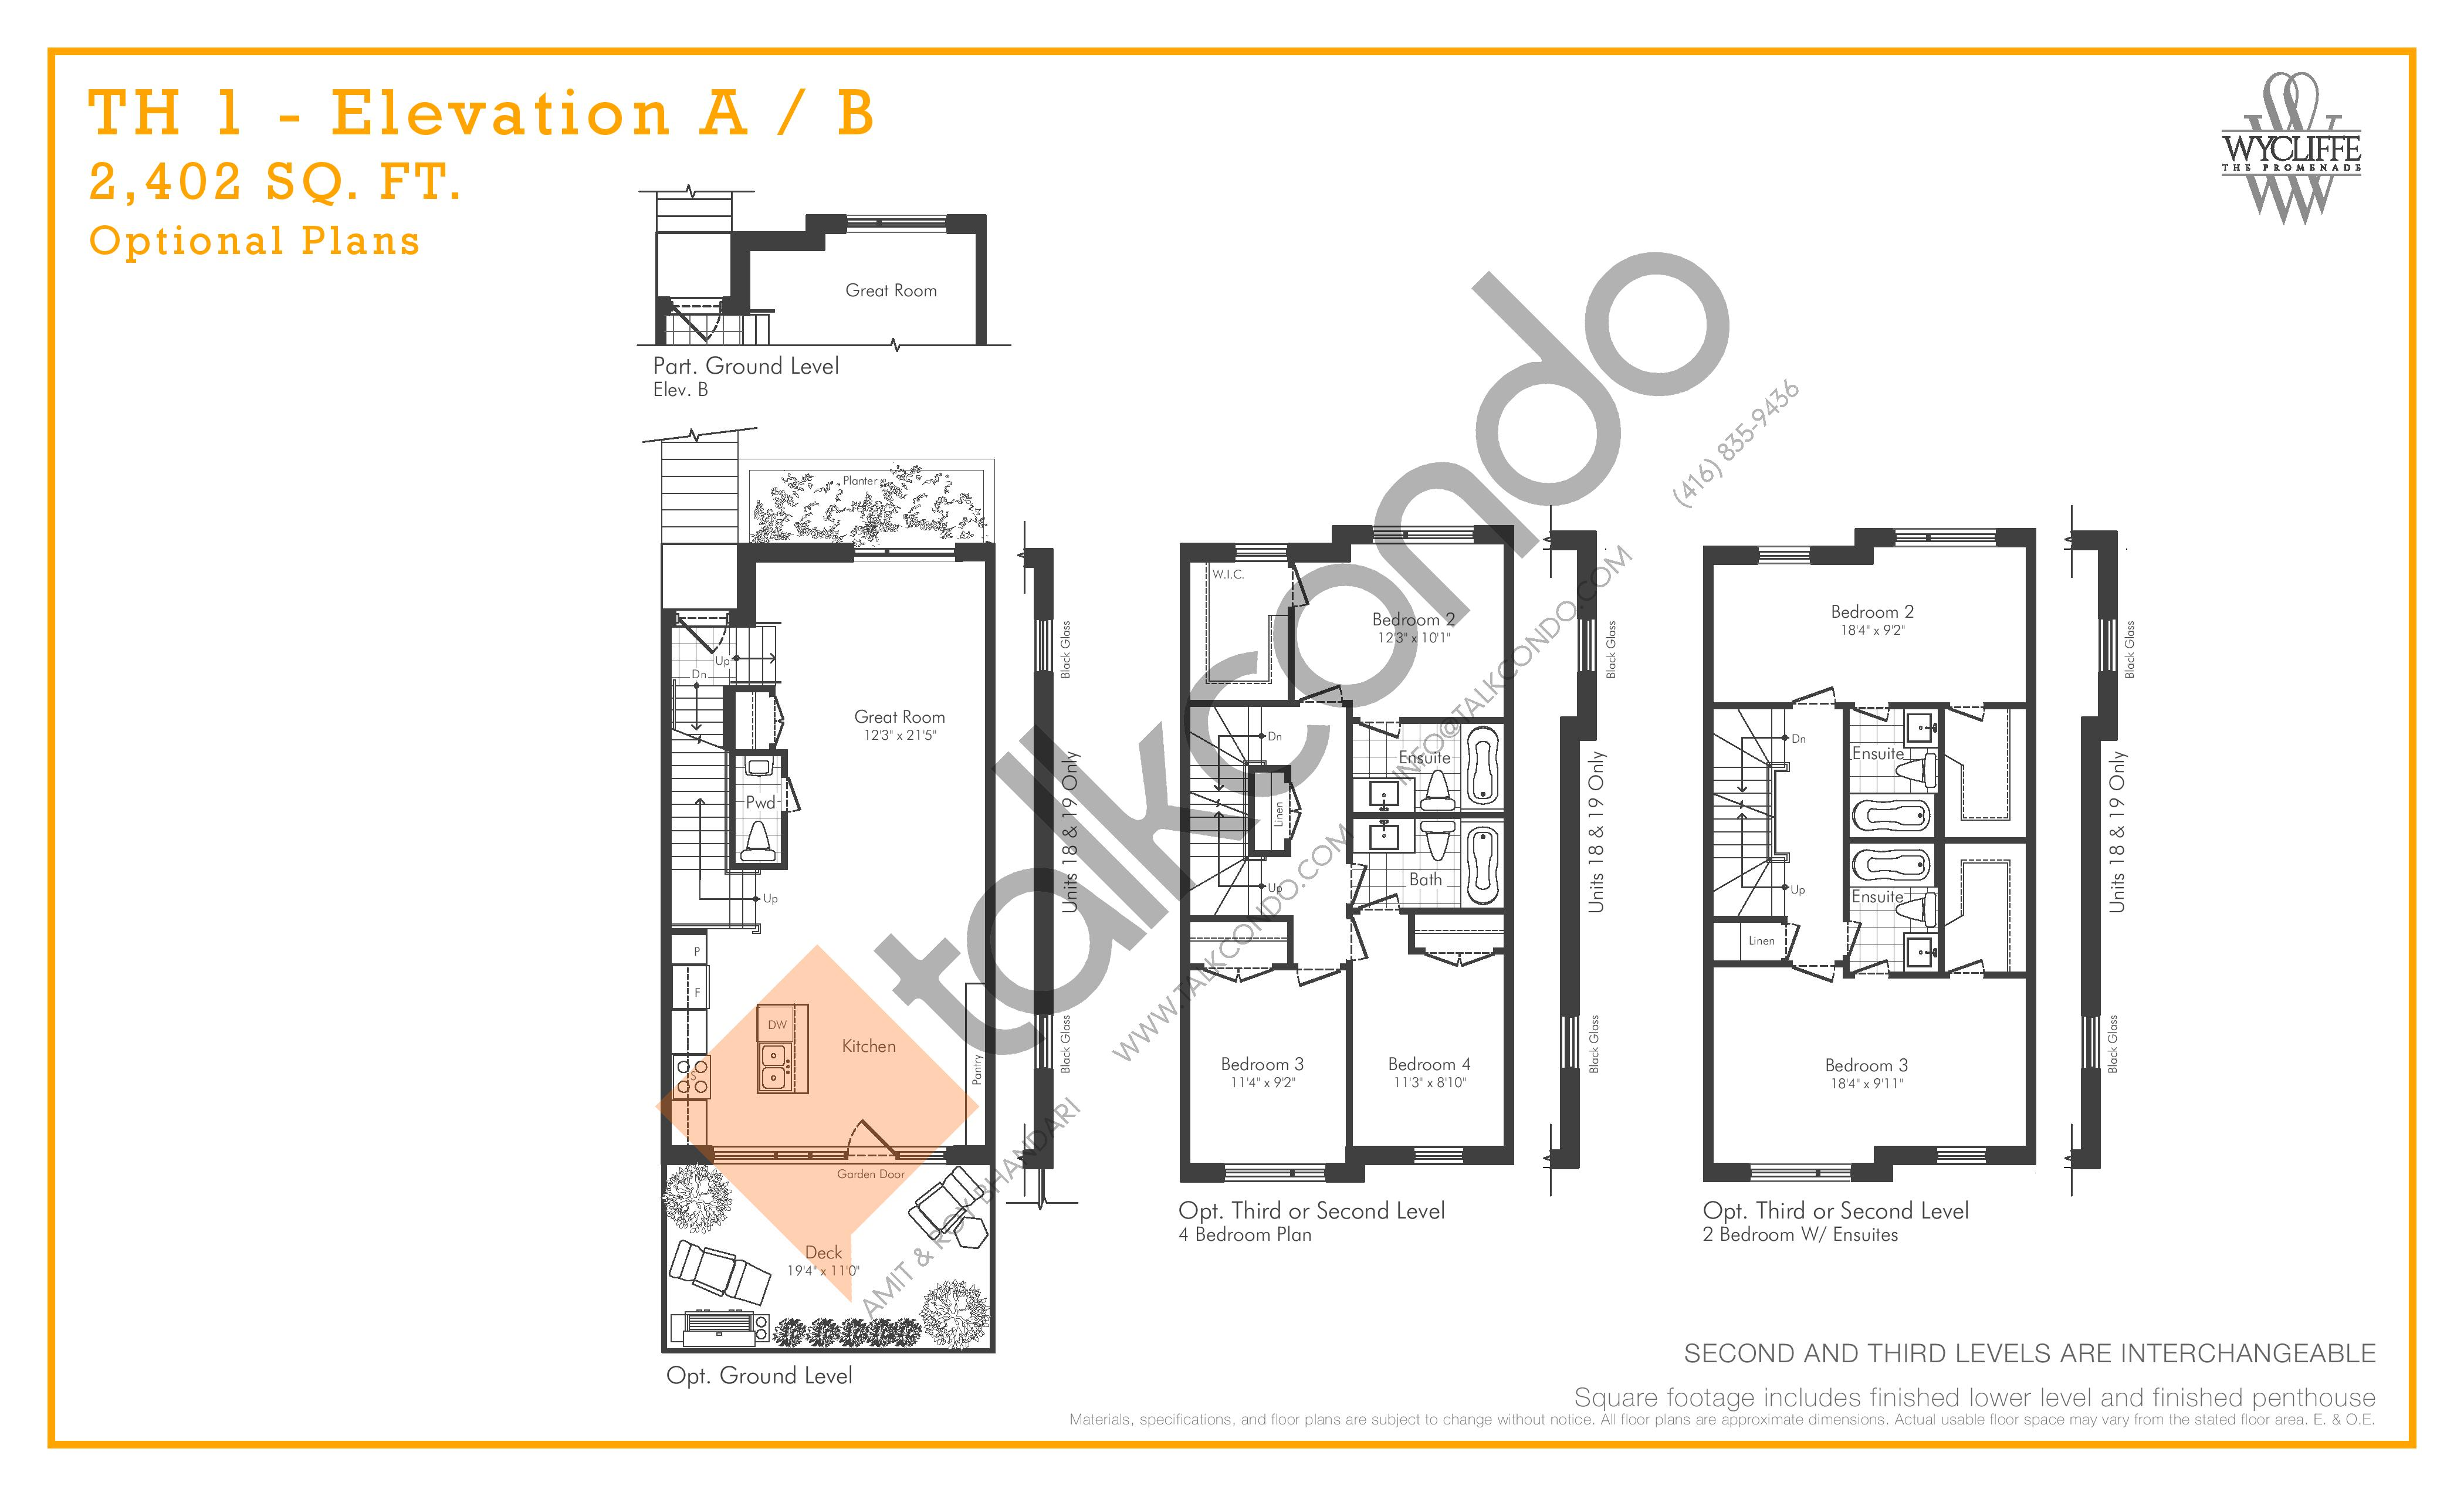 TH 1 - Elevation A/B Optional Plans Floor Plan at Wycliffe at the Promenade - 2402 sq.ft